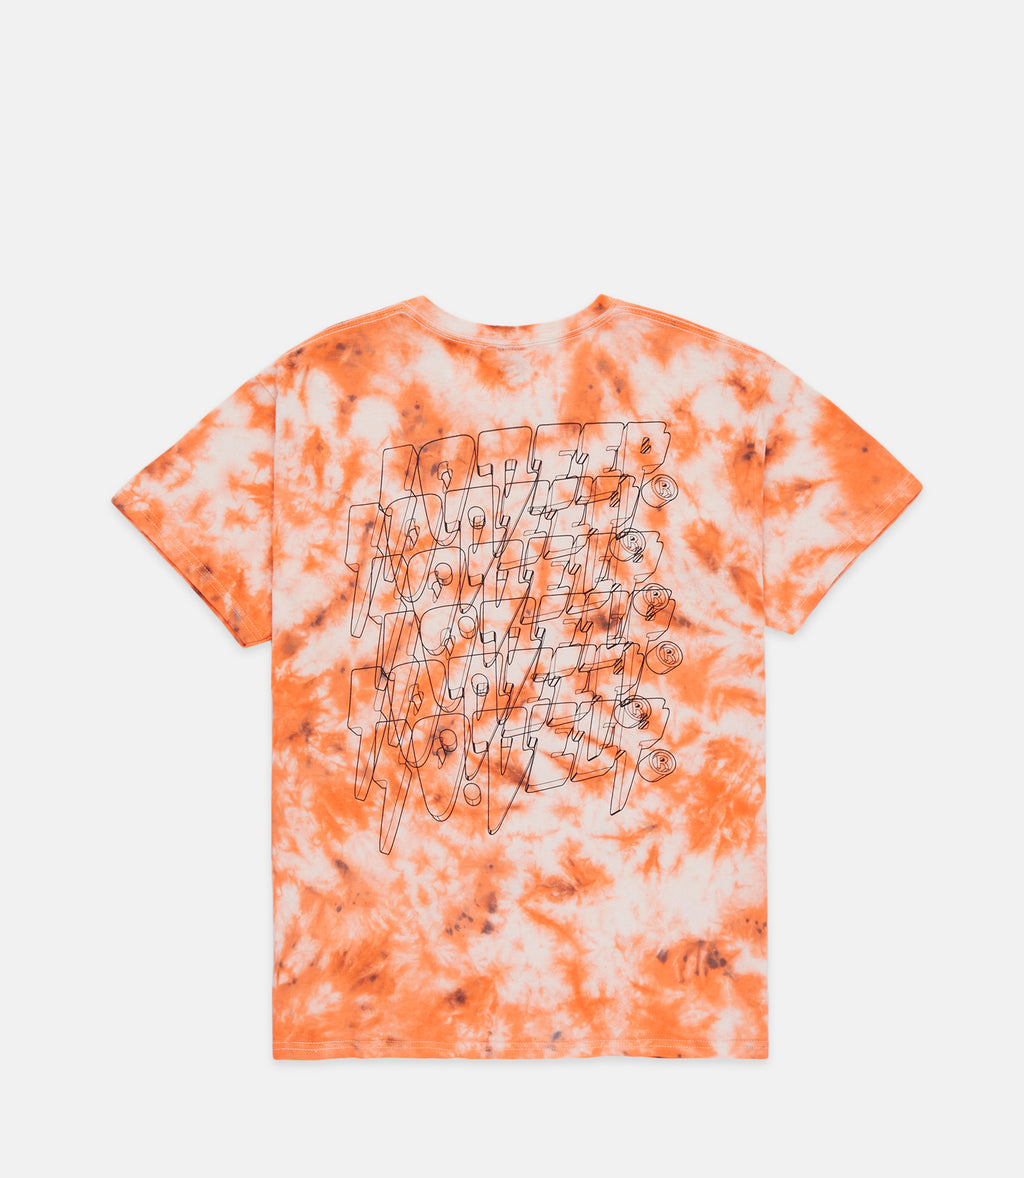 10Deep - Digi-Stack Men's Tee, Orange